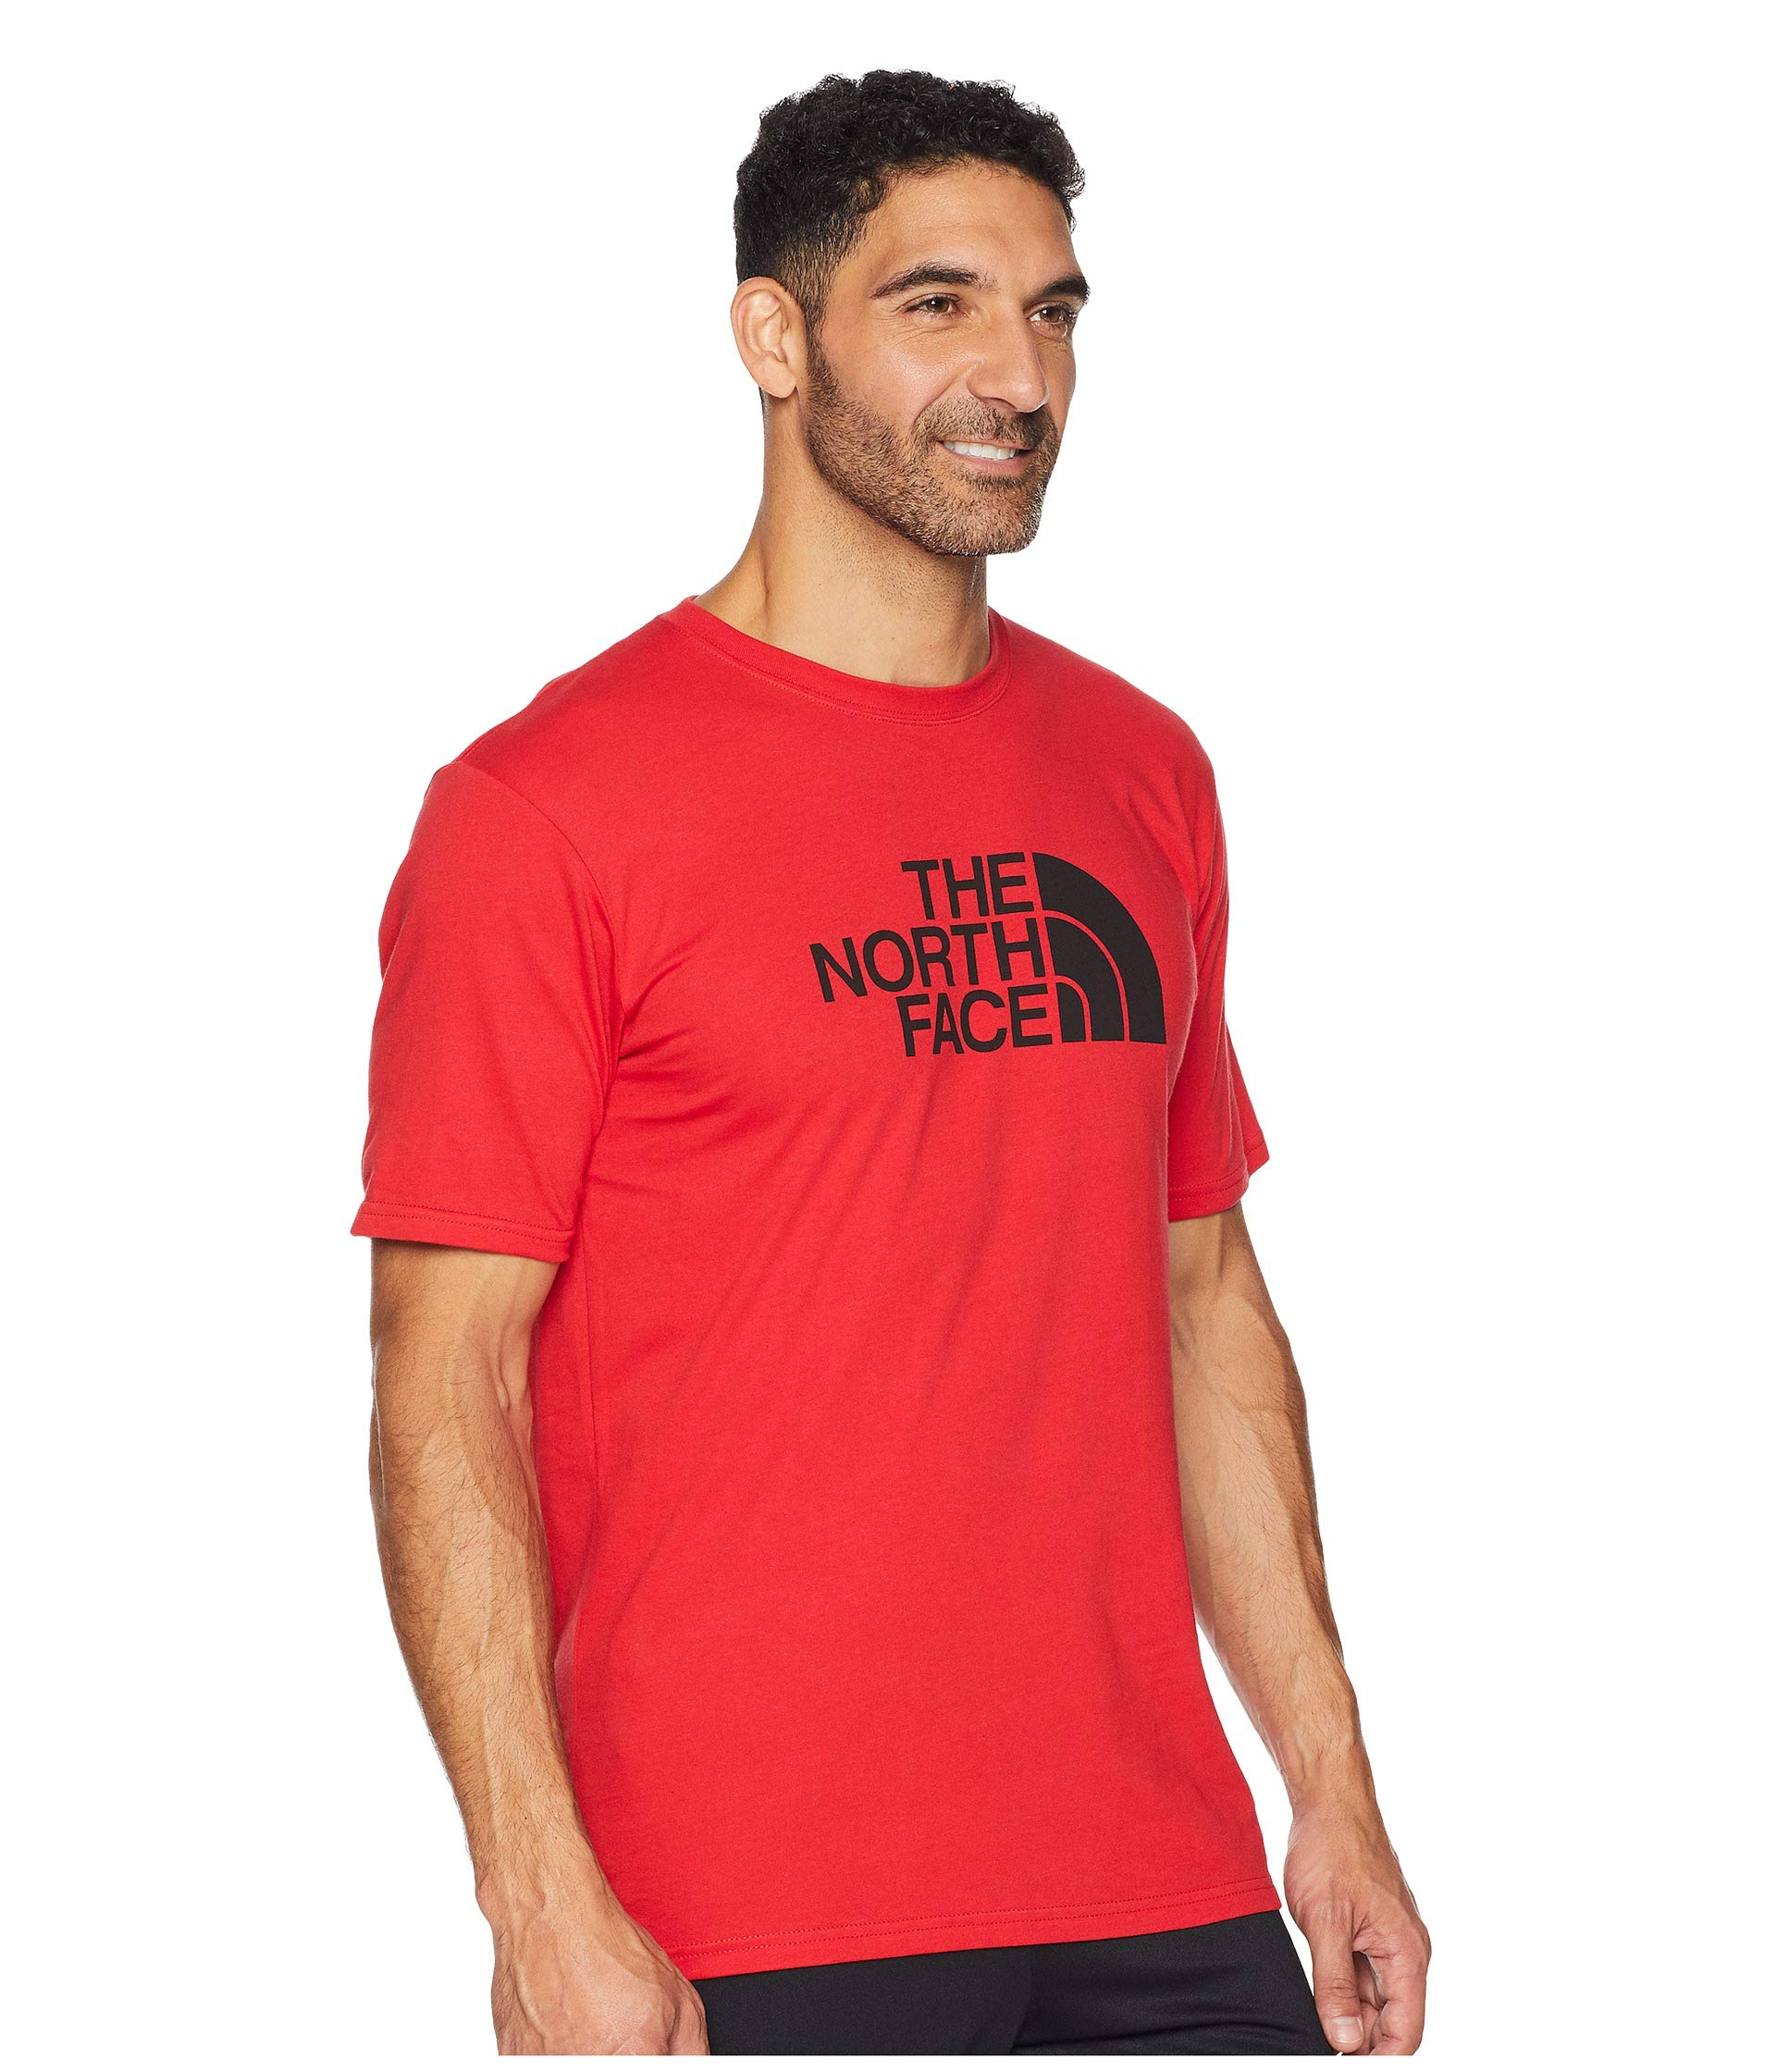 The Tee tnf Tnf 2 Black Sleeve 1 Face Short 1 Dome North Red 0fqAr40